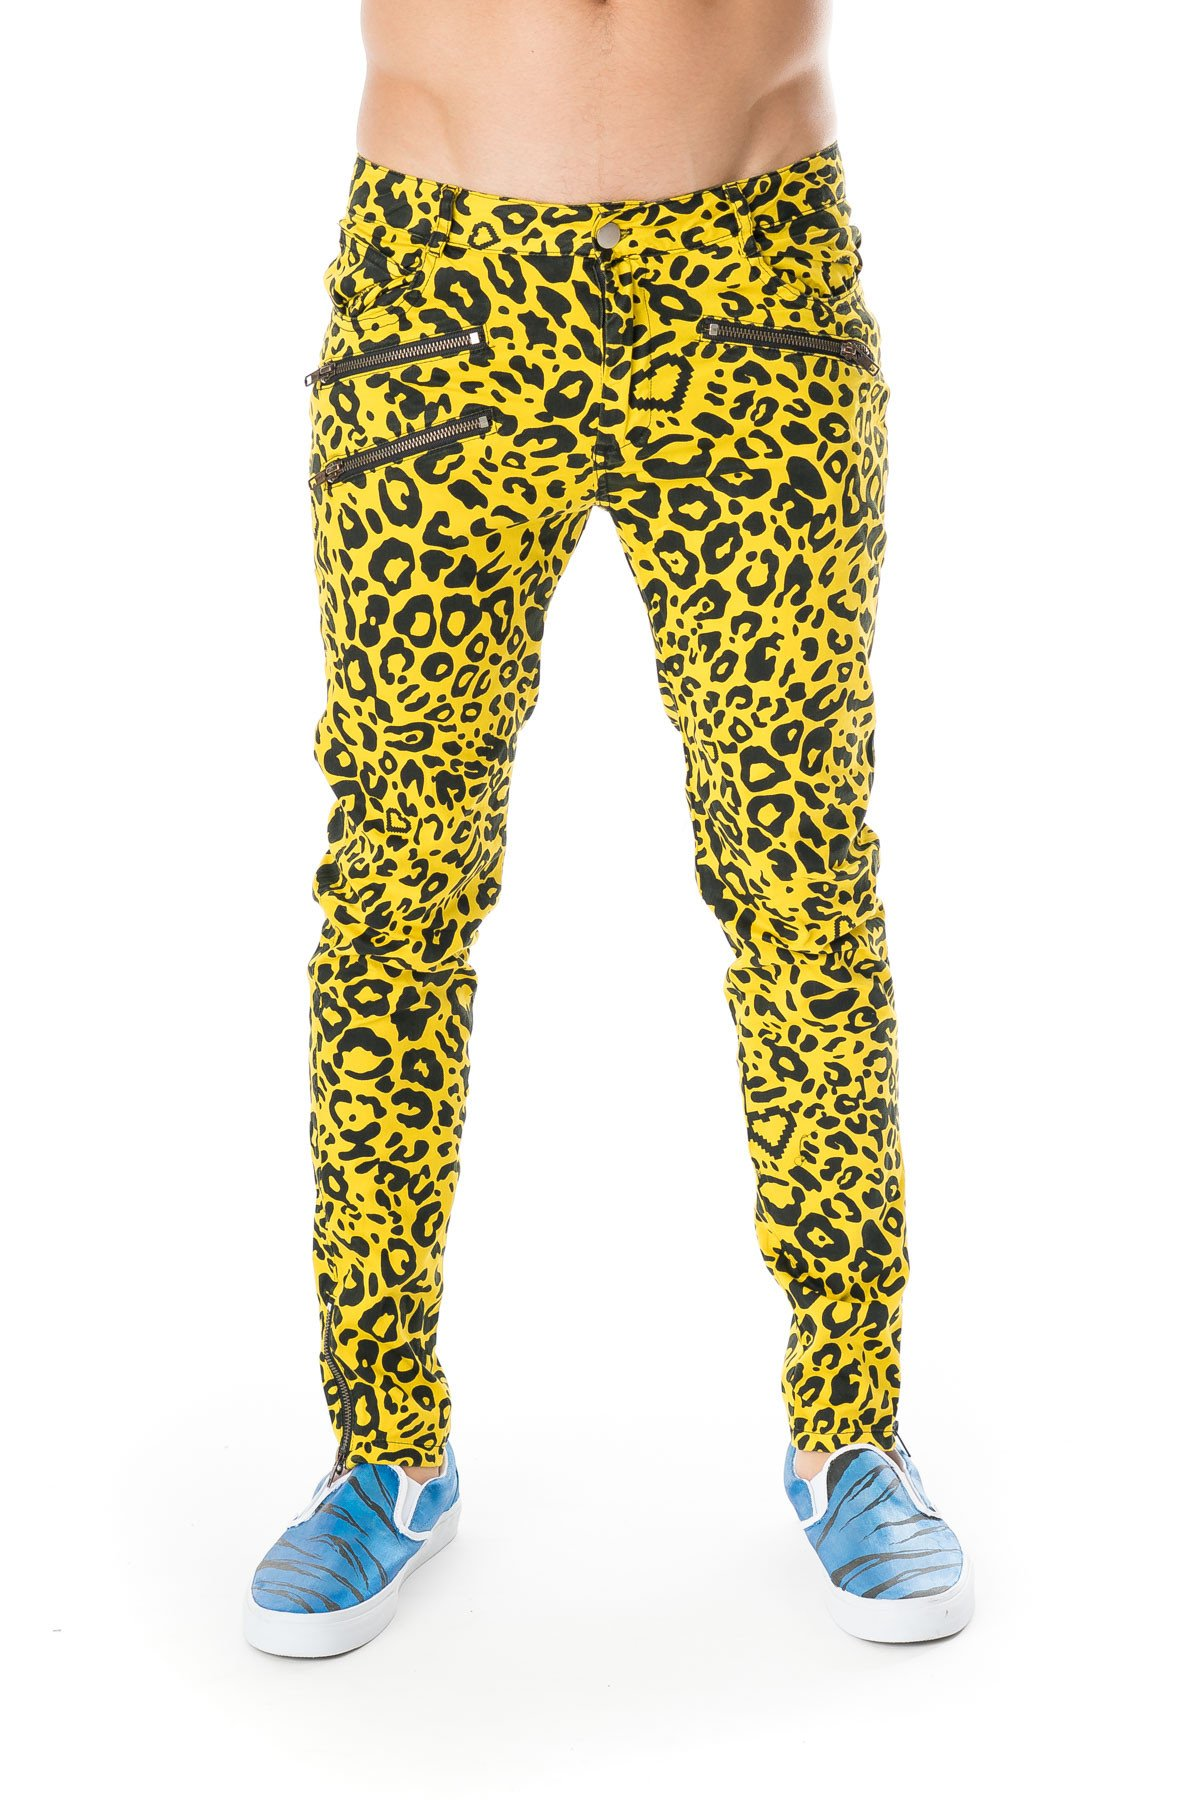 Party Rock Clothing★パーティーロッククロッシング ★Party Rock Cheetah Pants(イエロー)